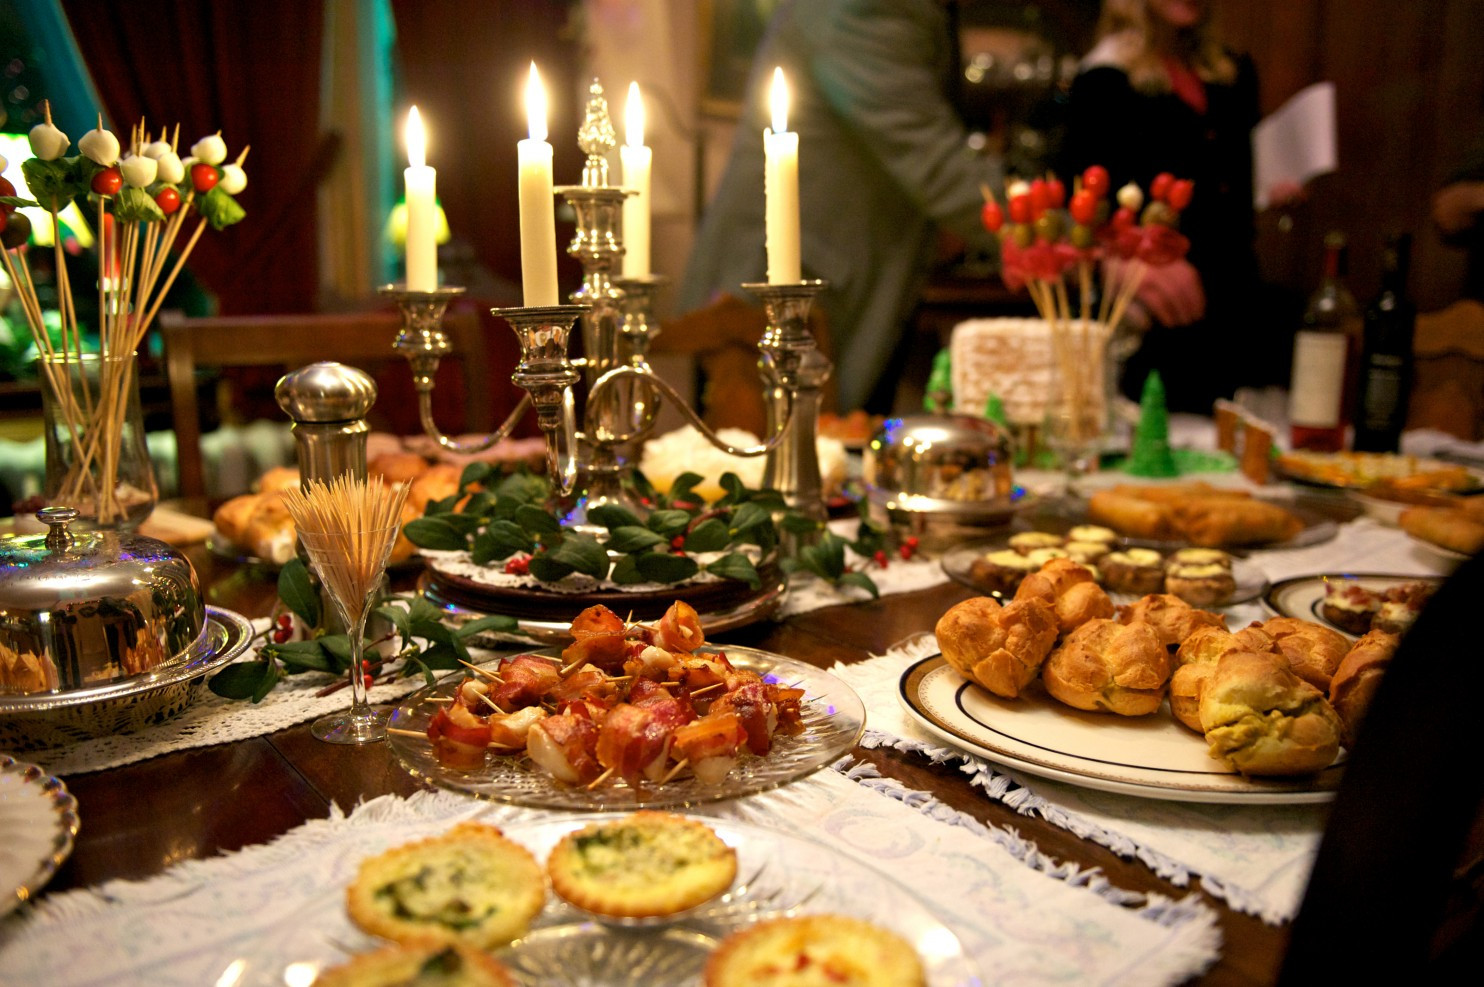 Christmas Dinner Restaurants  7 Best Options For Dining Christmas Eve & Day in Dallas